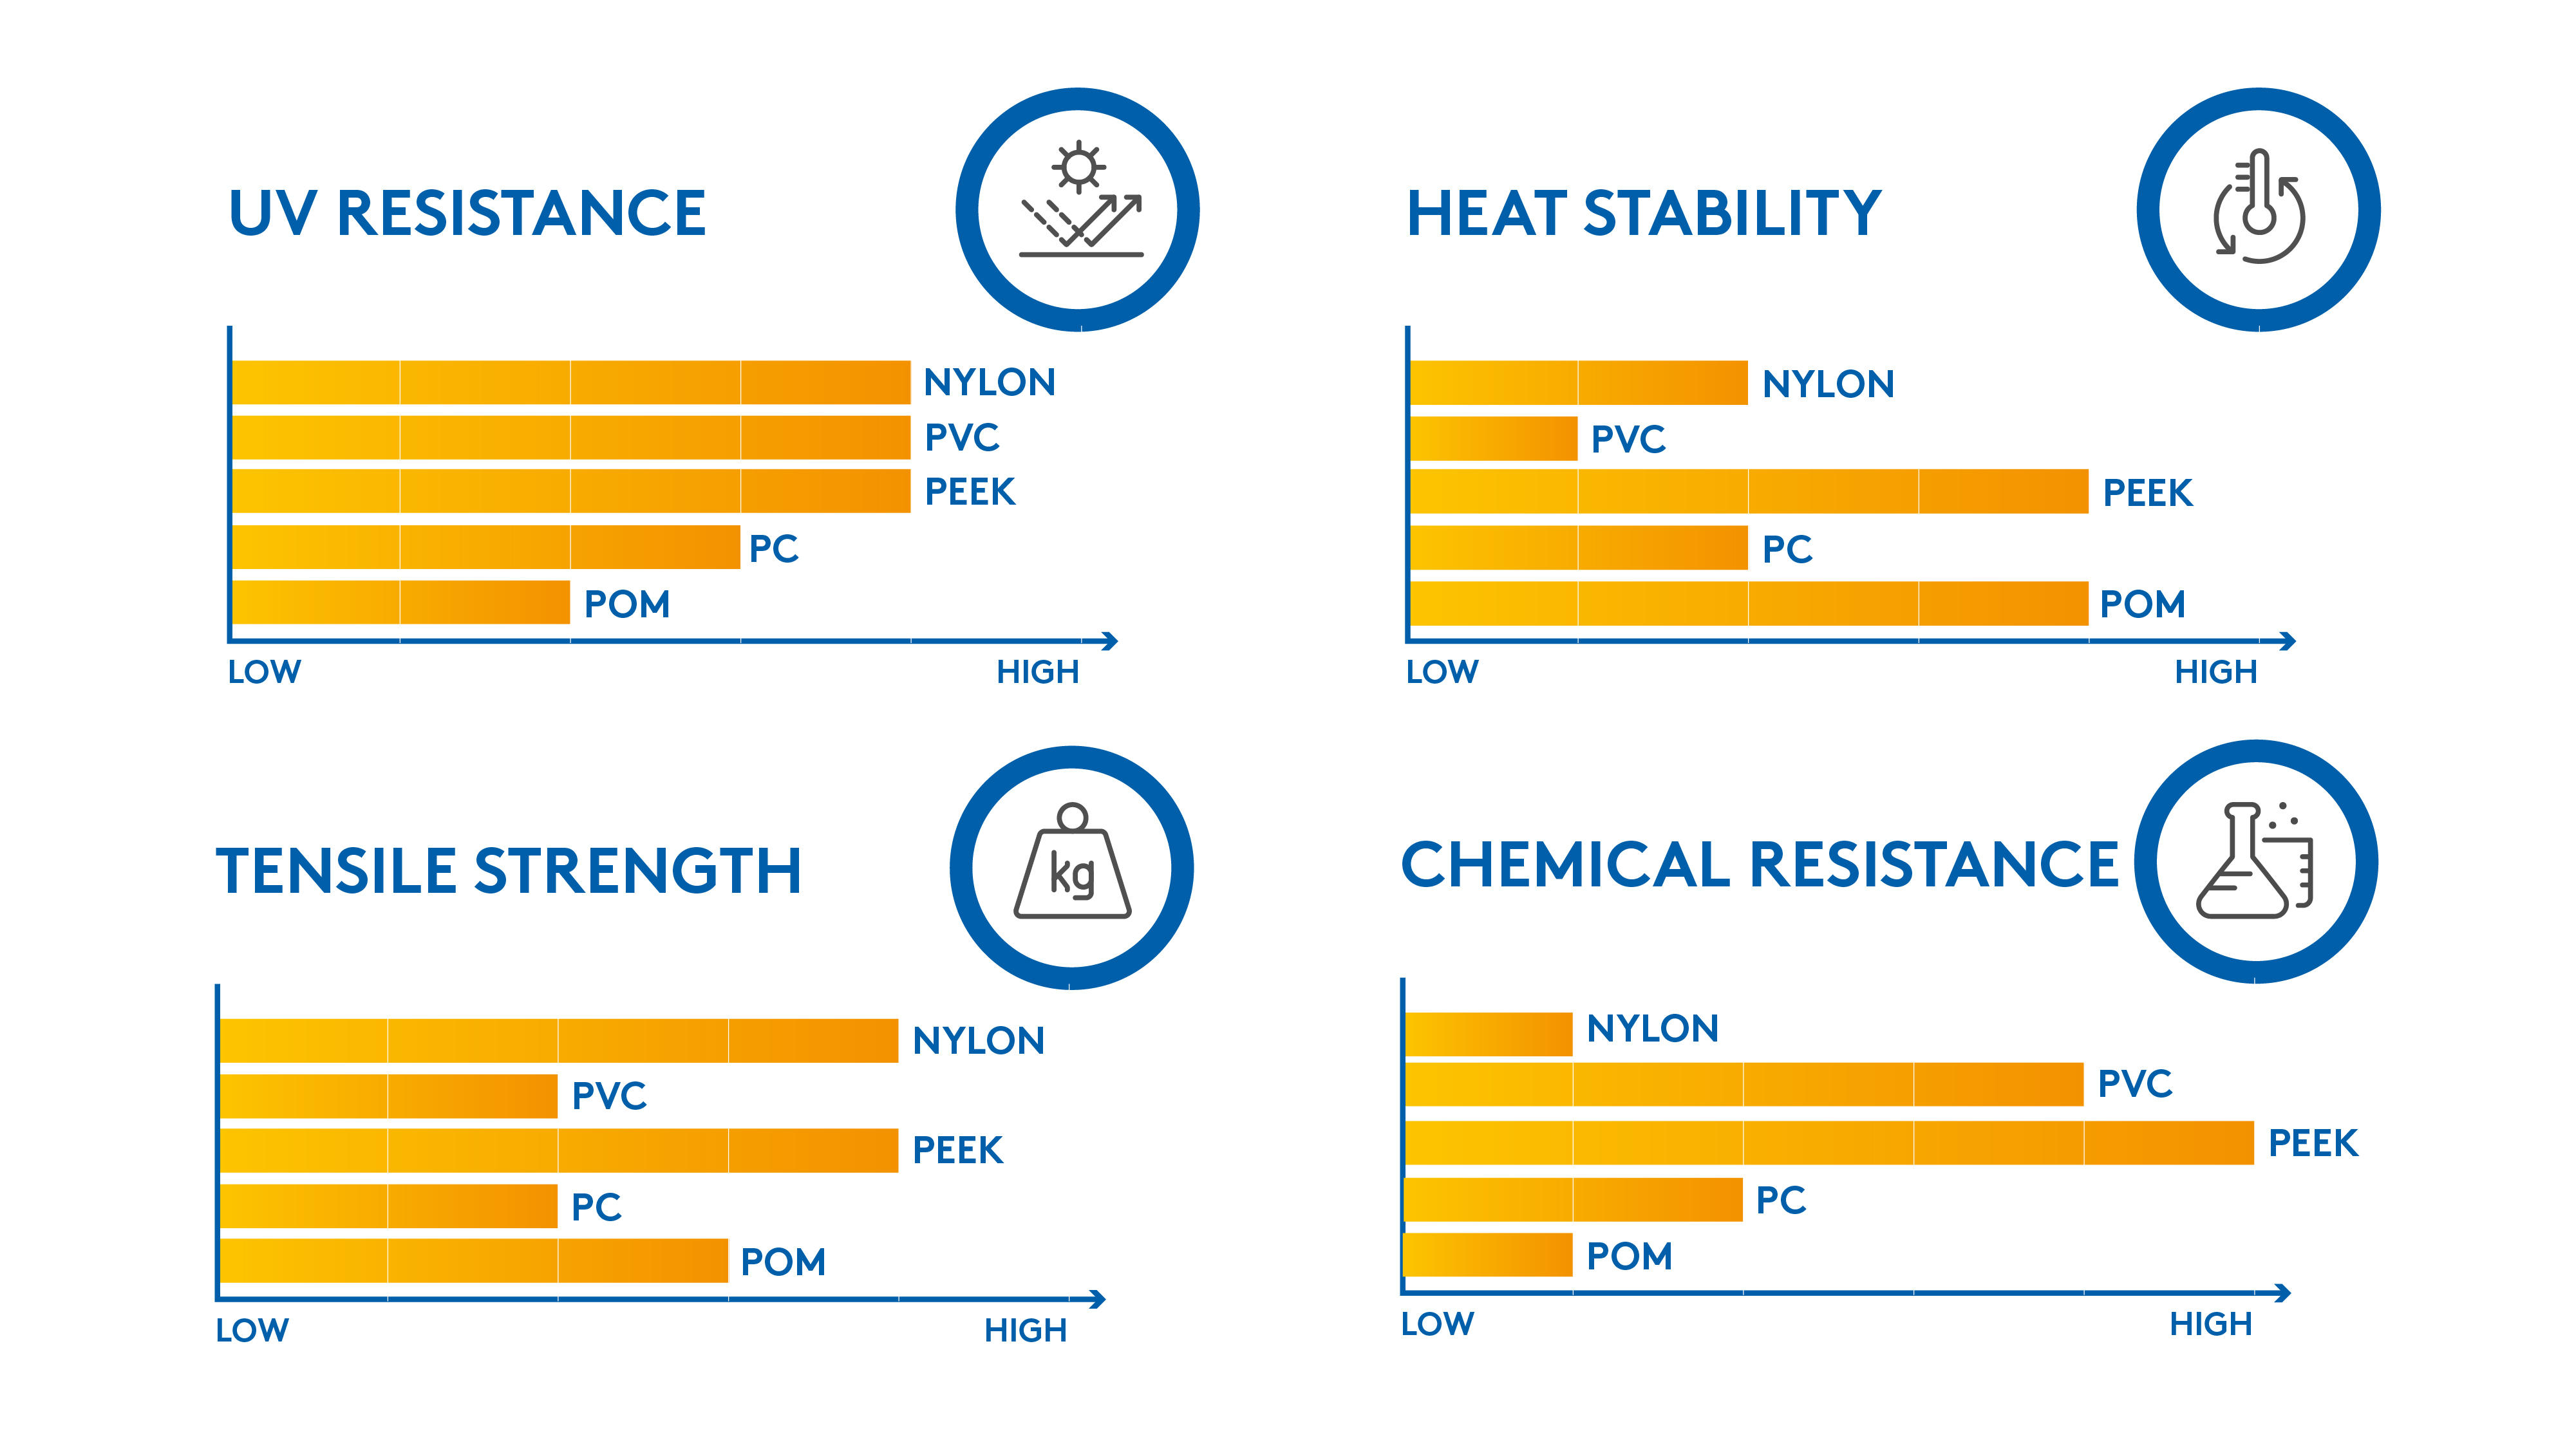 Key plastics and associate performance: UV resistance, heat stability, tensile strength, chemical resistance